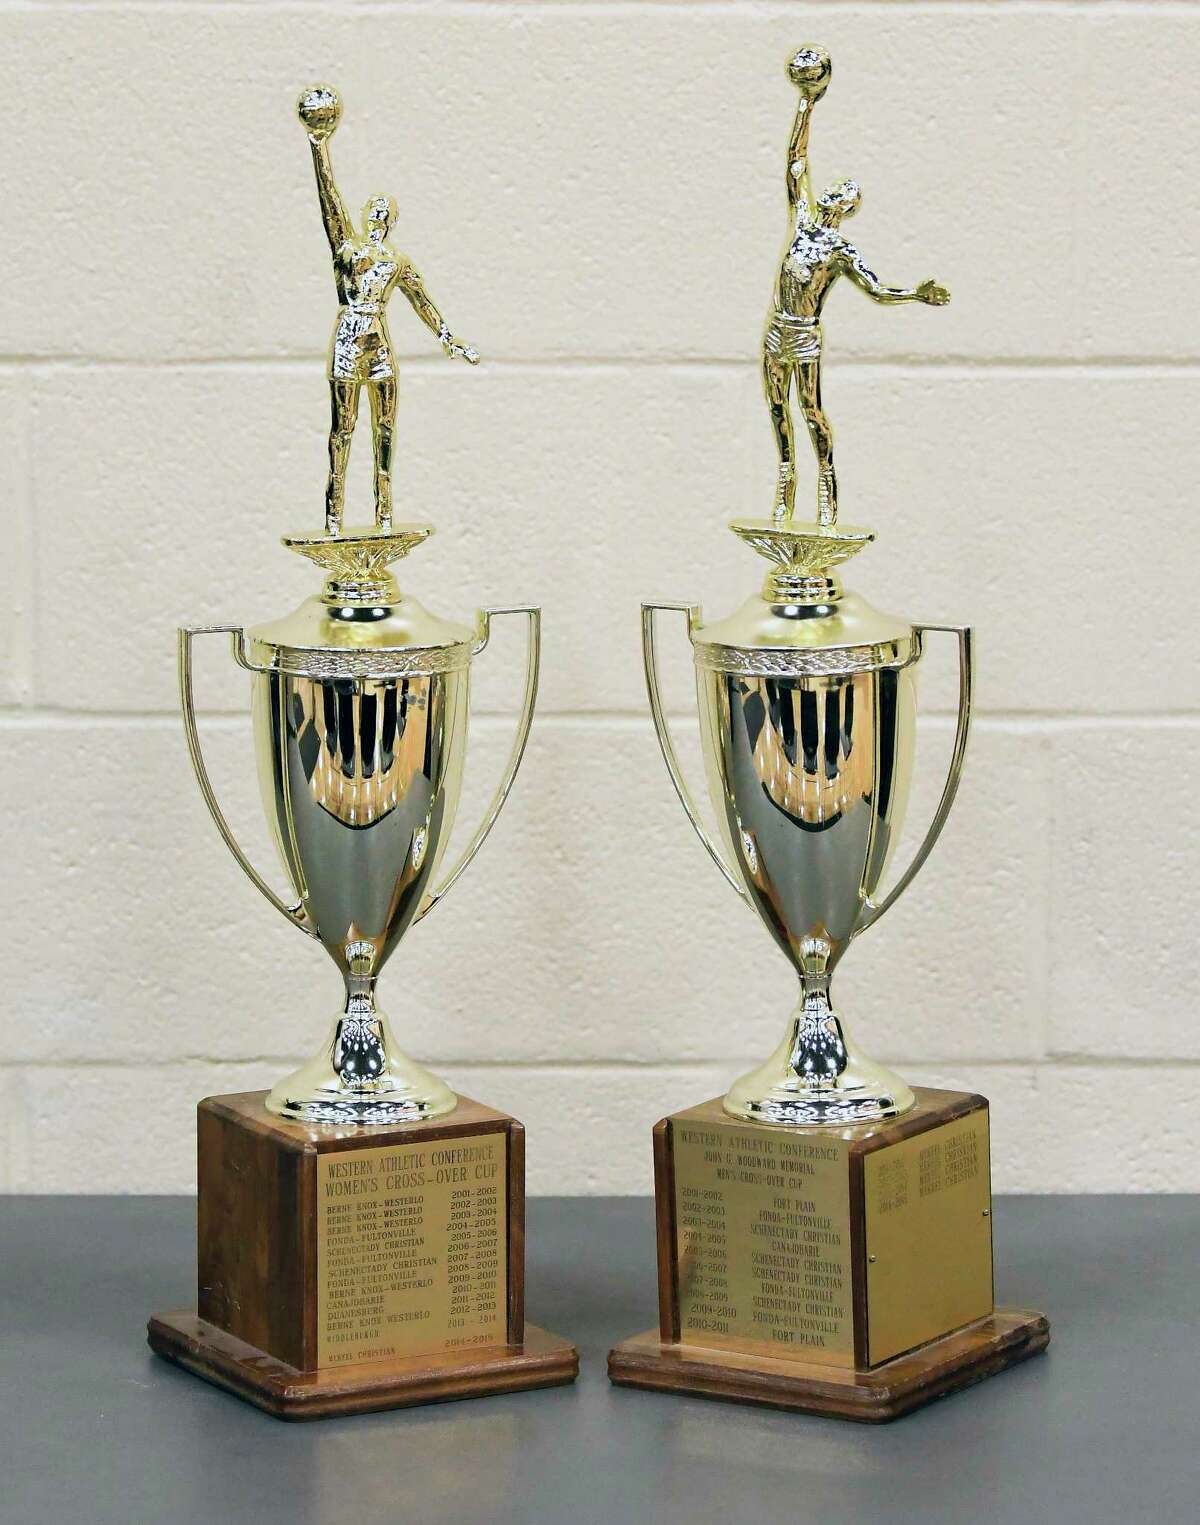 Game Trophys for the Boys-Girls Western Athletic Conference high school basketball tournament Tuesday, Feb. 13, 2018, in Johnstown, N.Y. (Hans Pennink / Special to the Times Union)